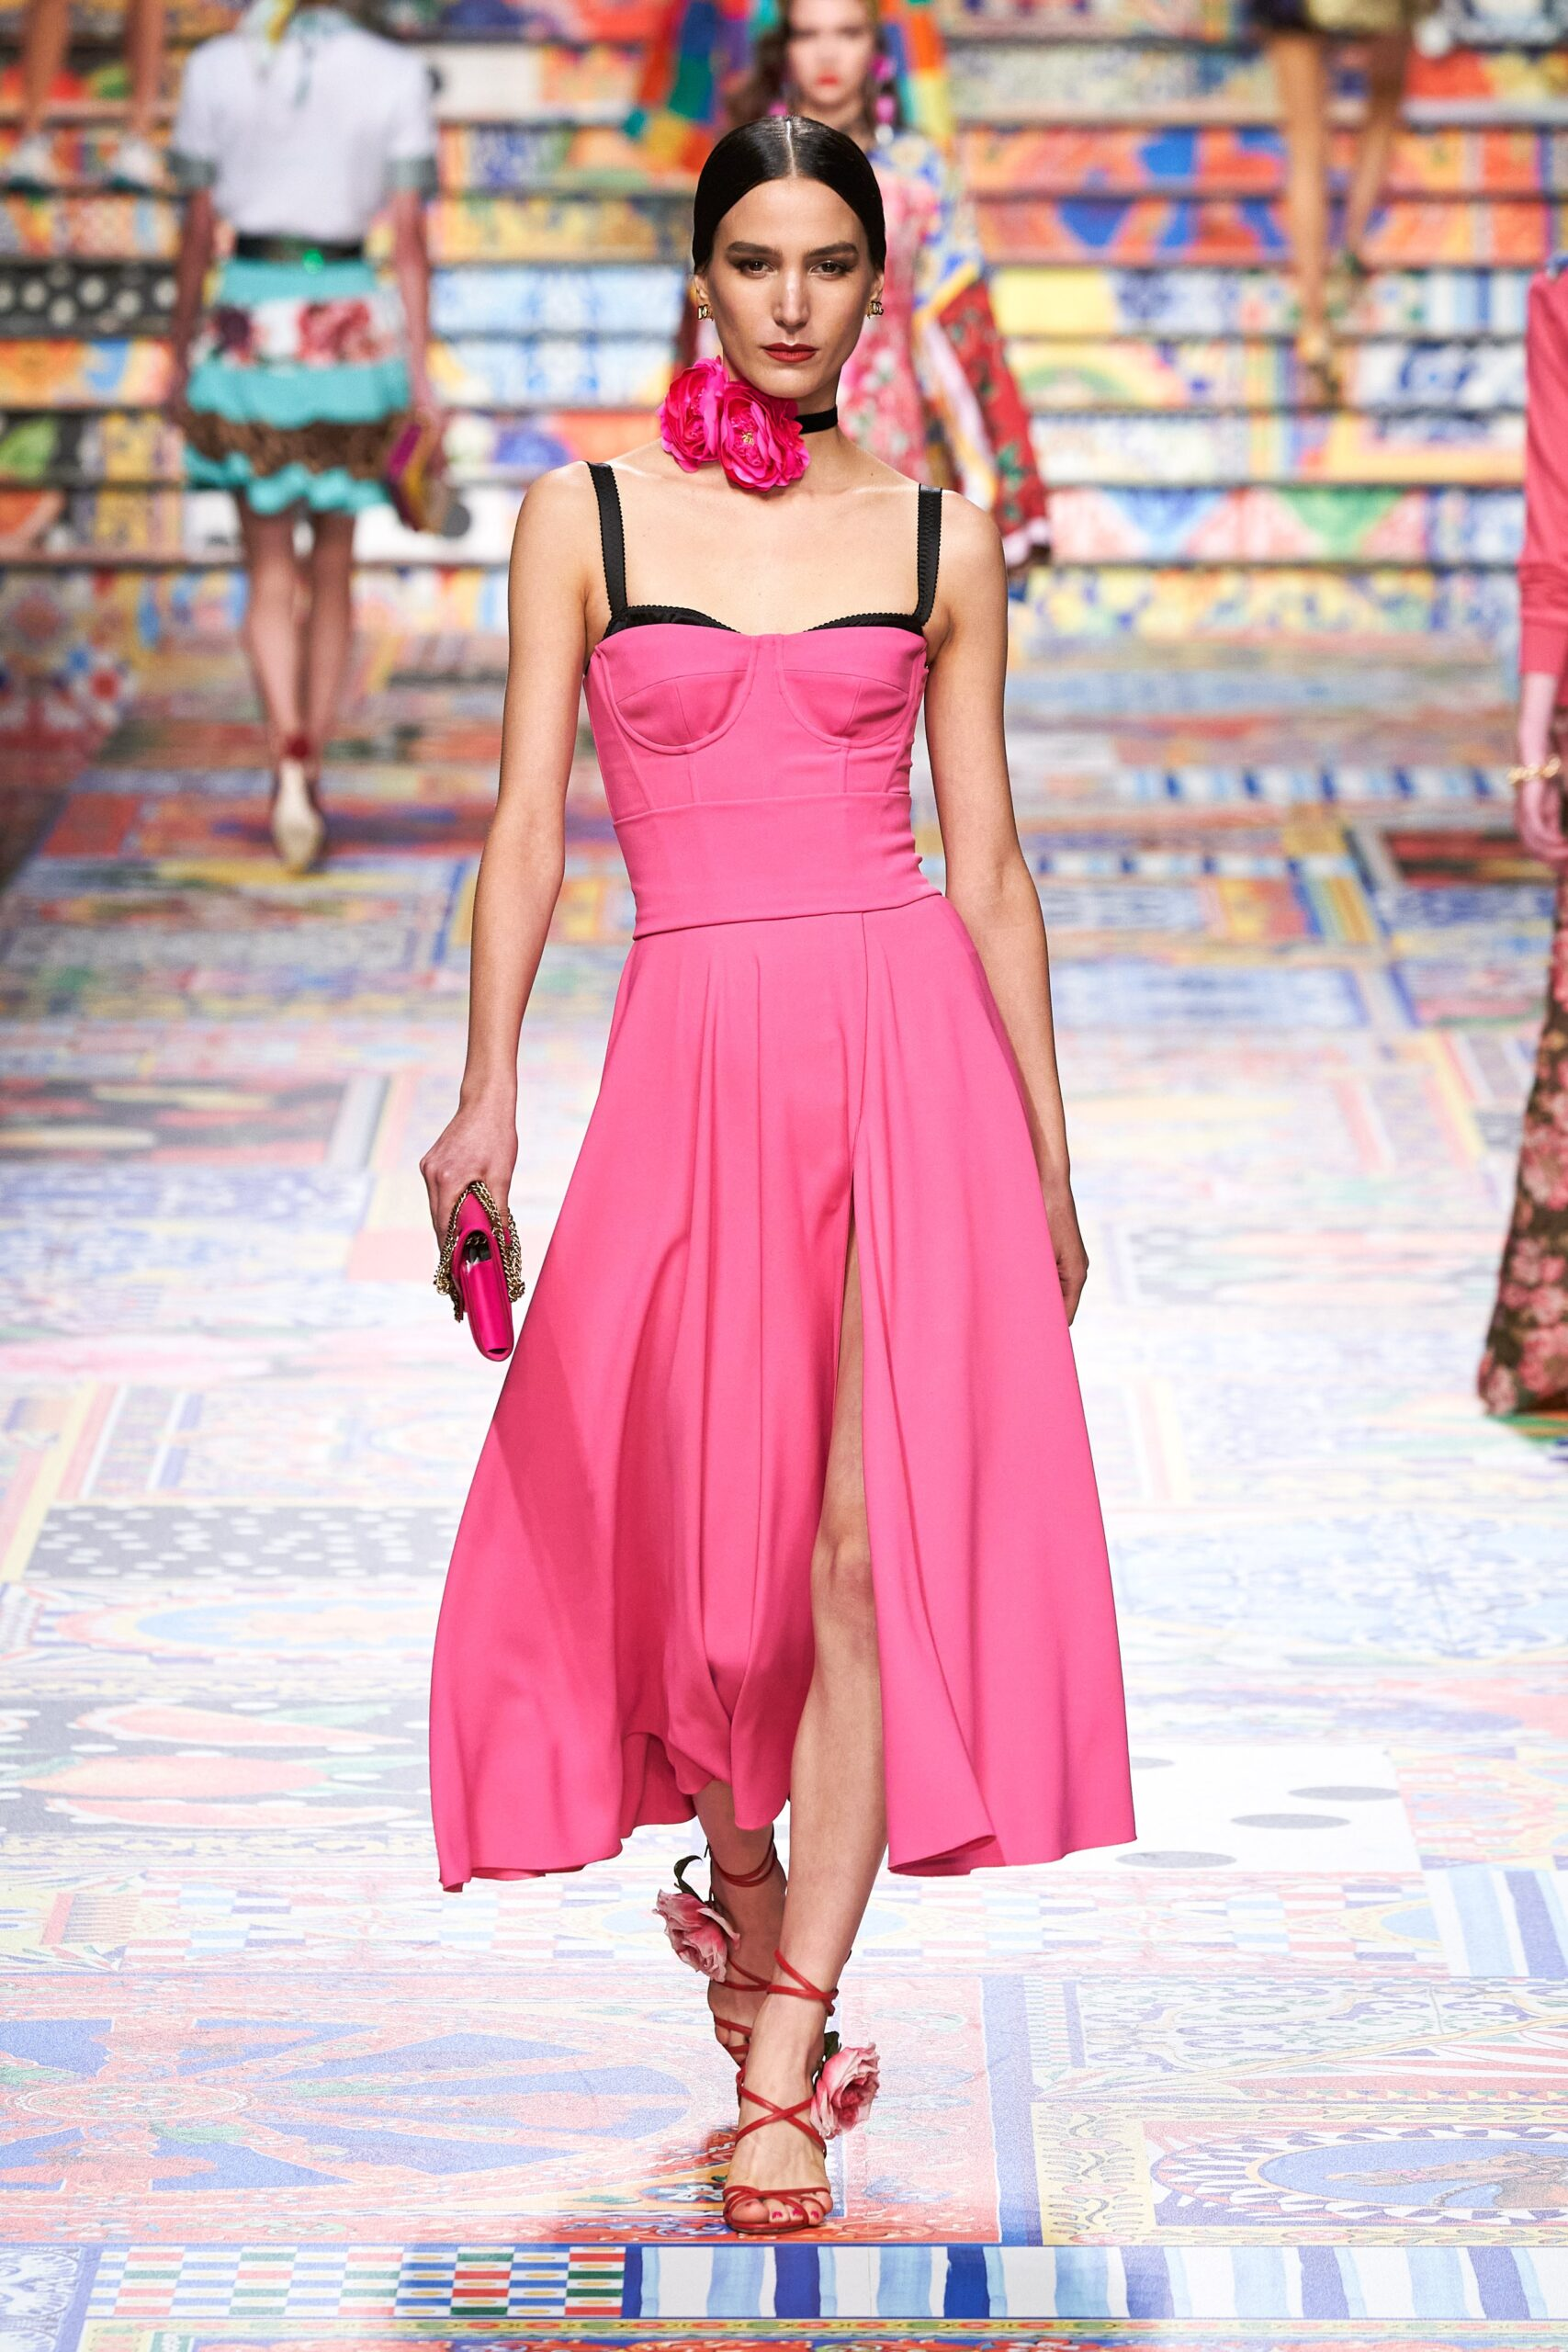 Rosa lampone - Dolce & Gabbana Ready-to-Wear Spring 2021